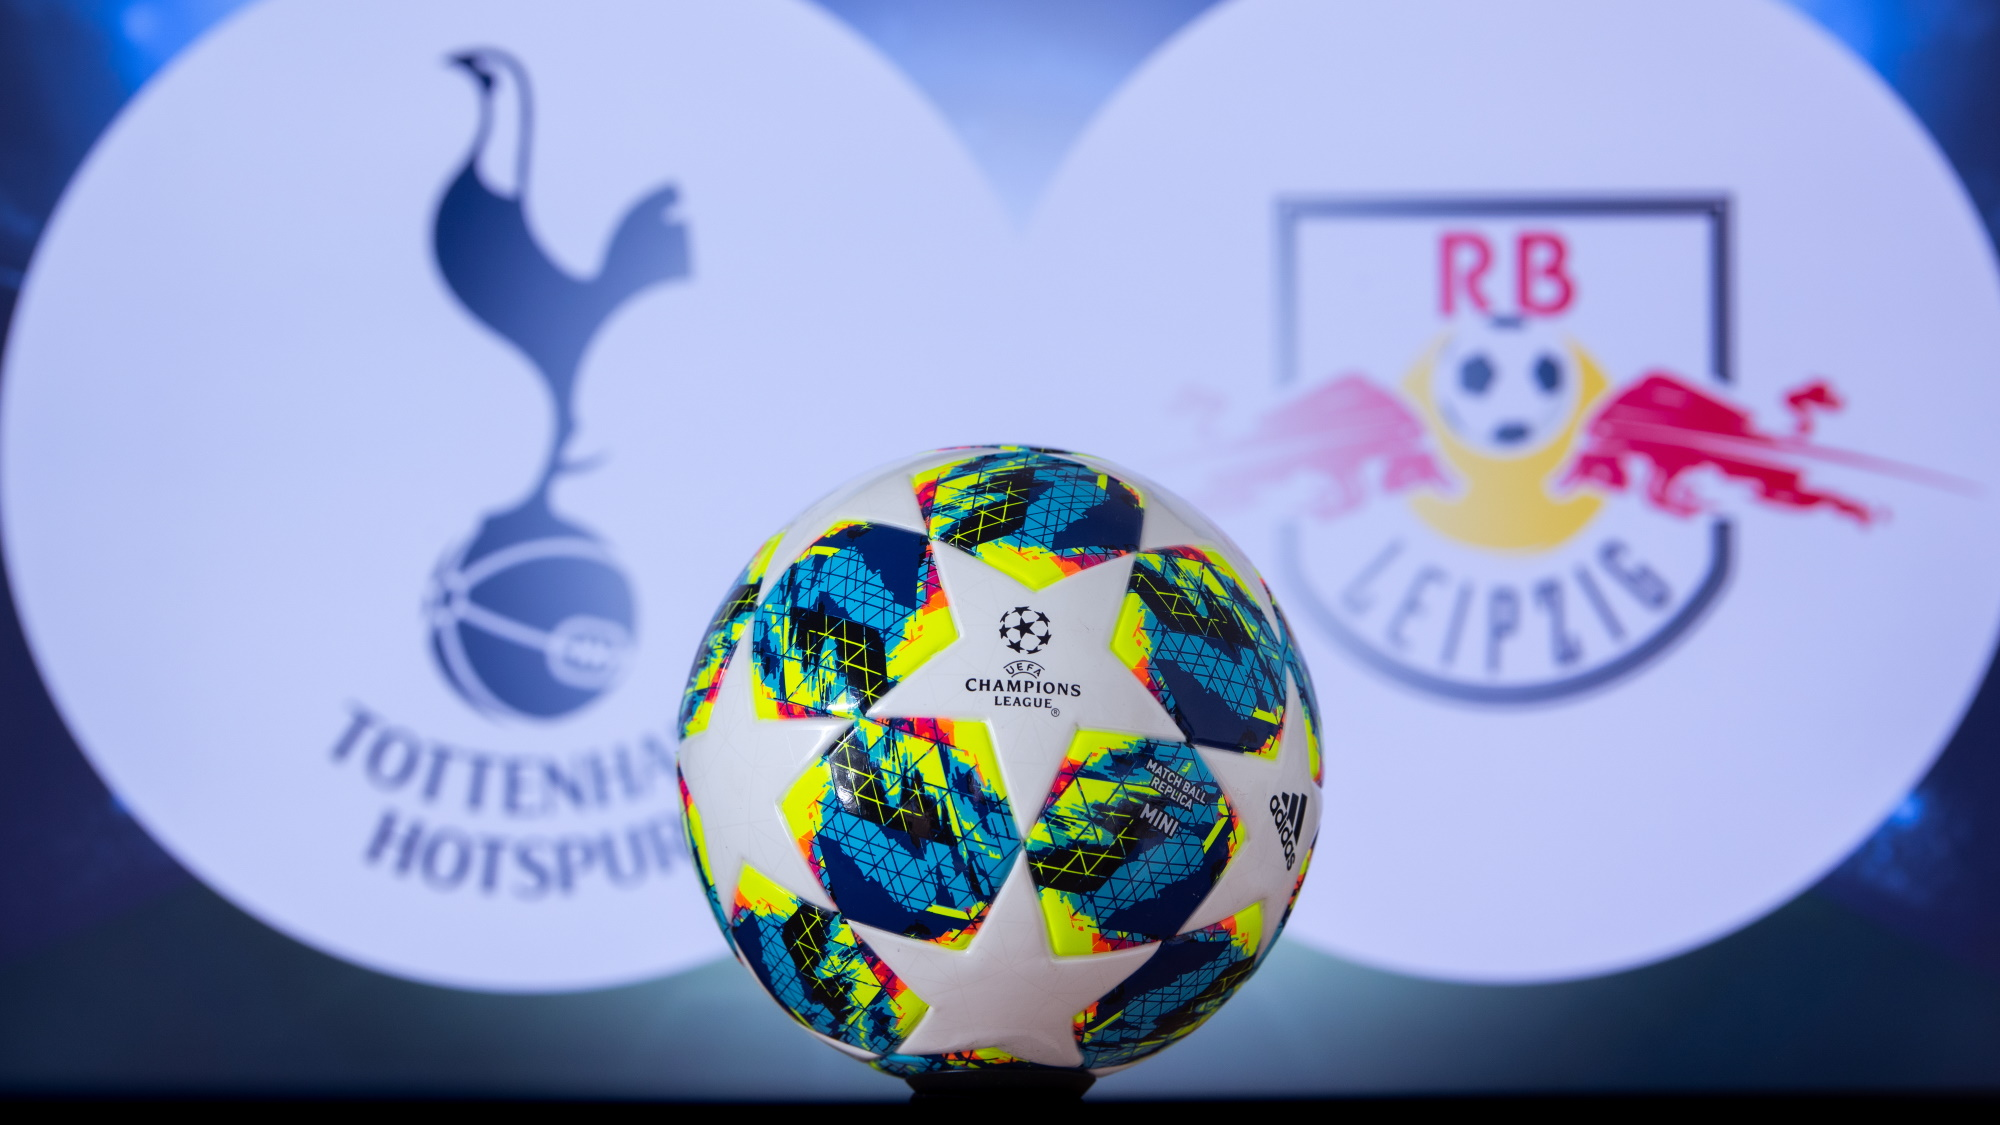 Tottenham vs RB Leipzig live stream: how to watch Champions League 2020 football online from anywhere